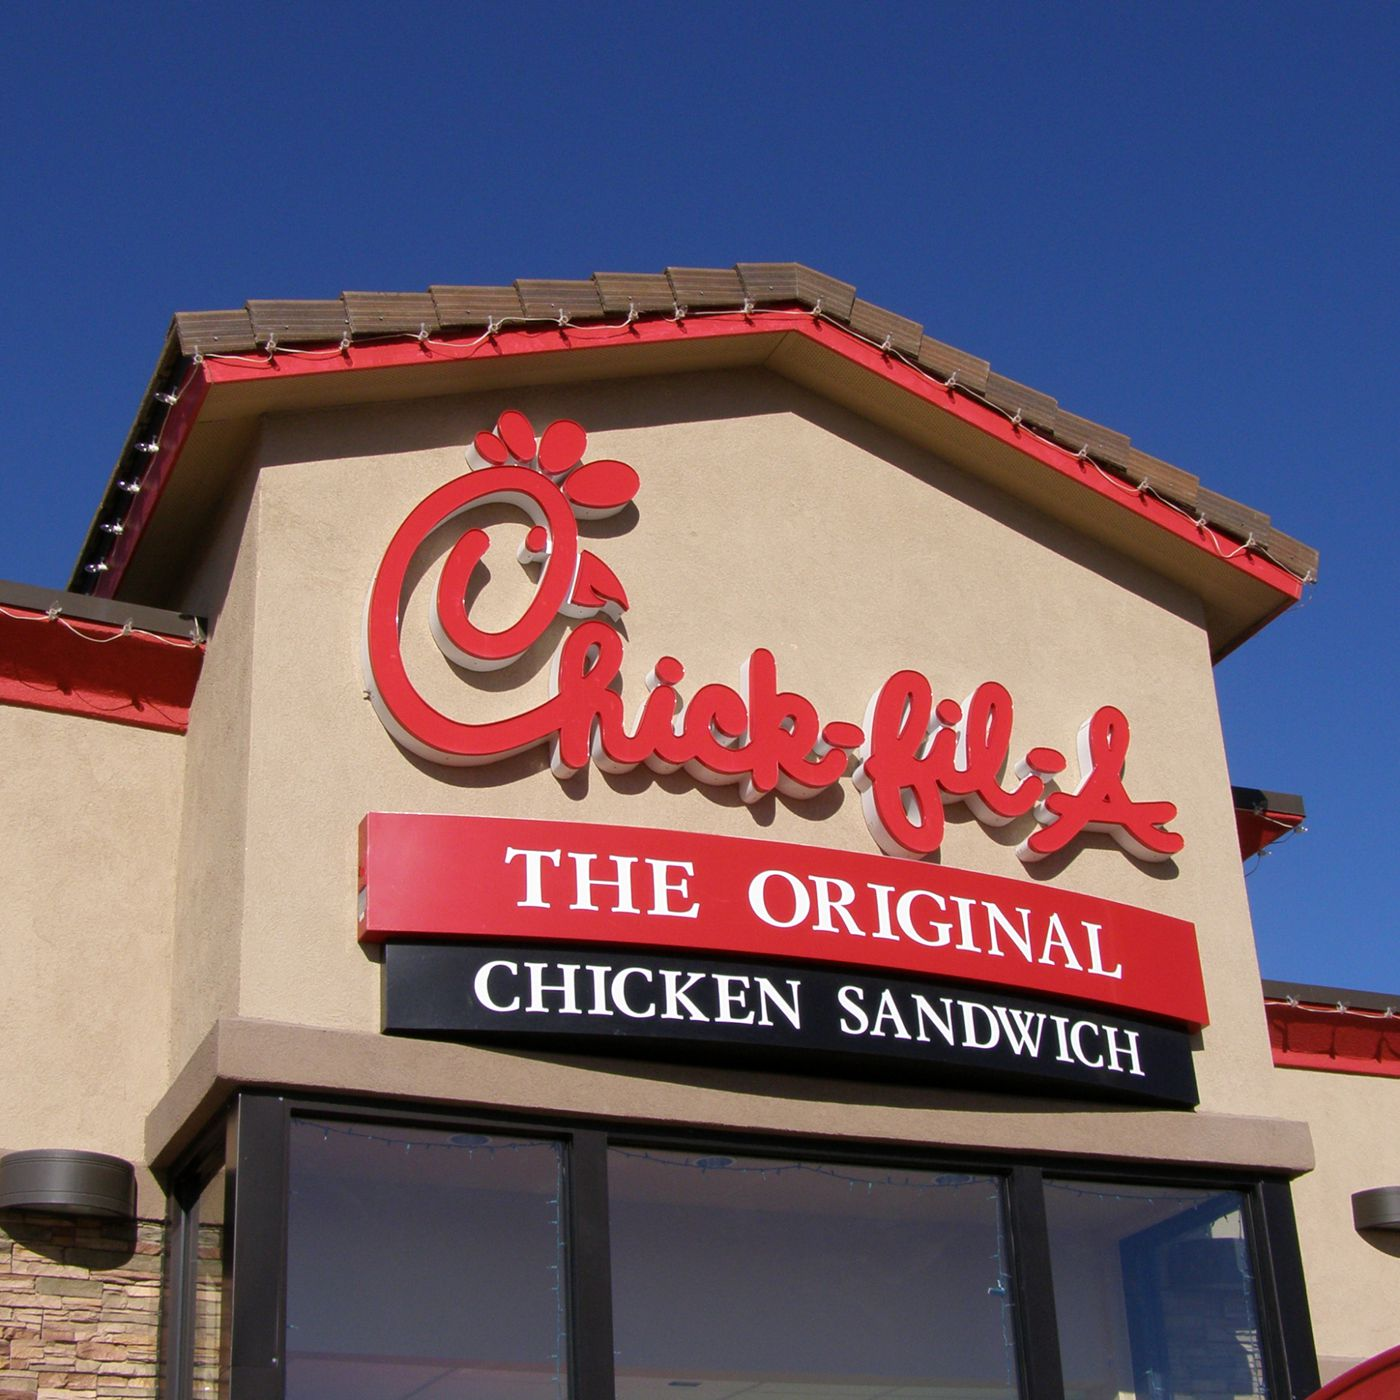 Chick-fil-A could be the third-largest fast-food chain in